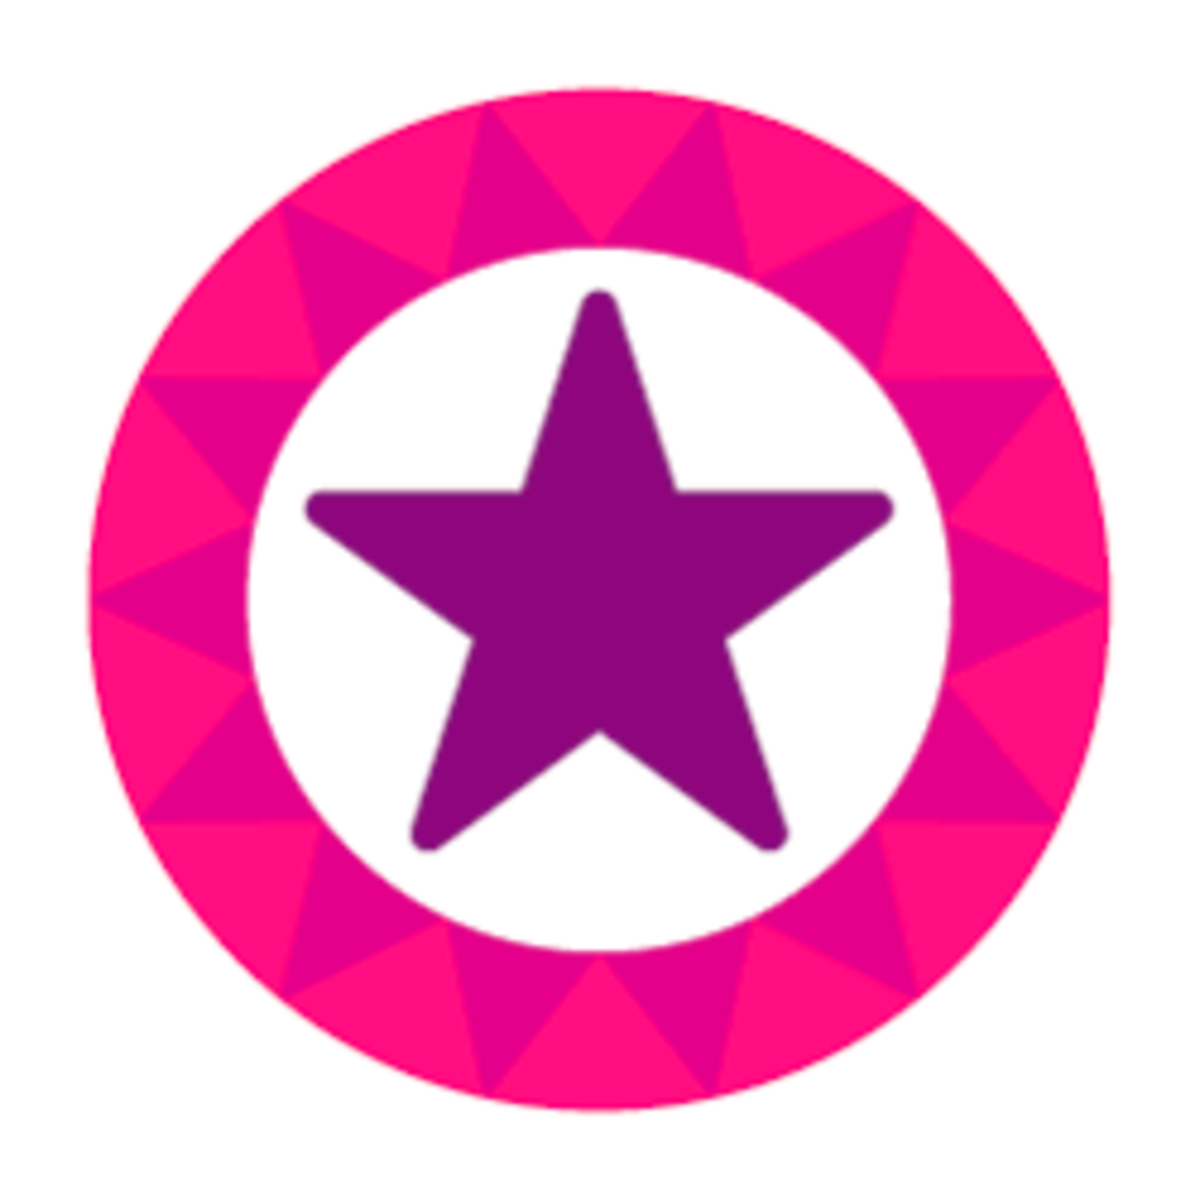 This lens was awarded a Purple Star.. yay!